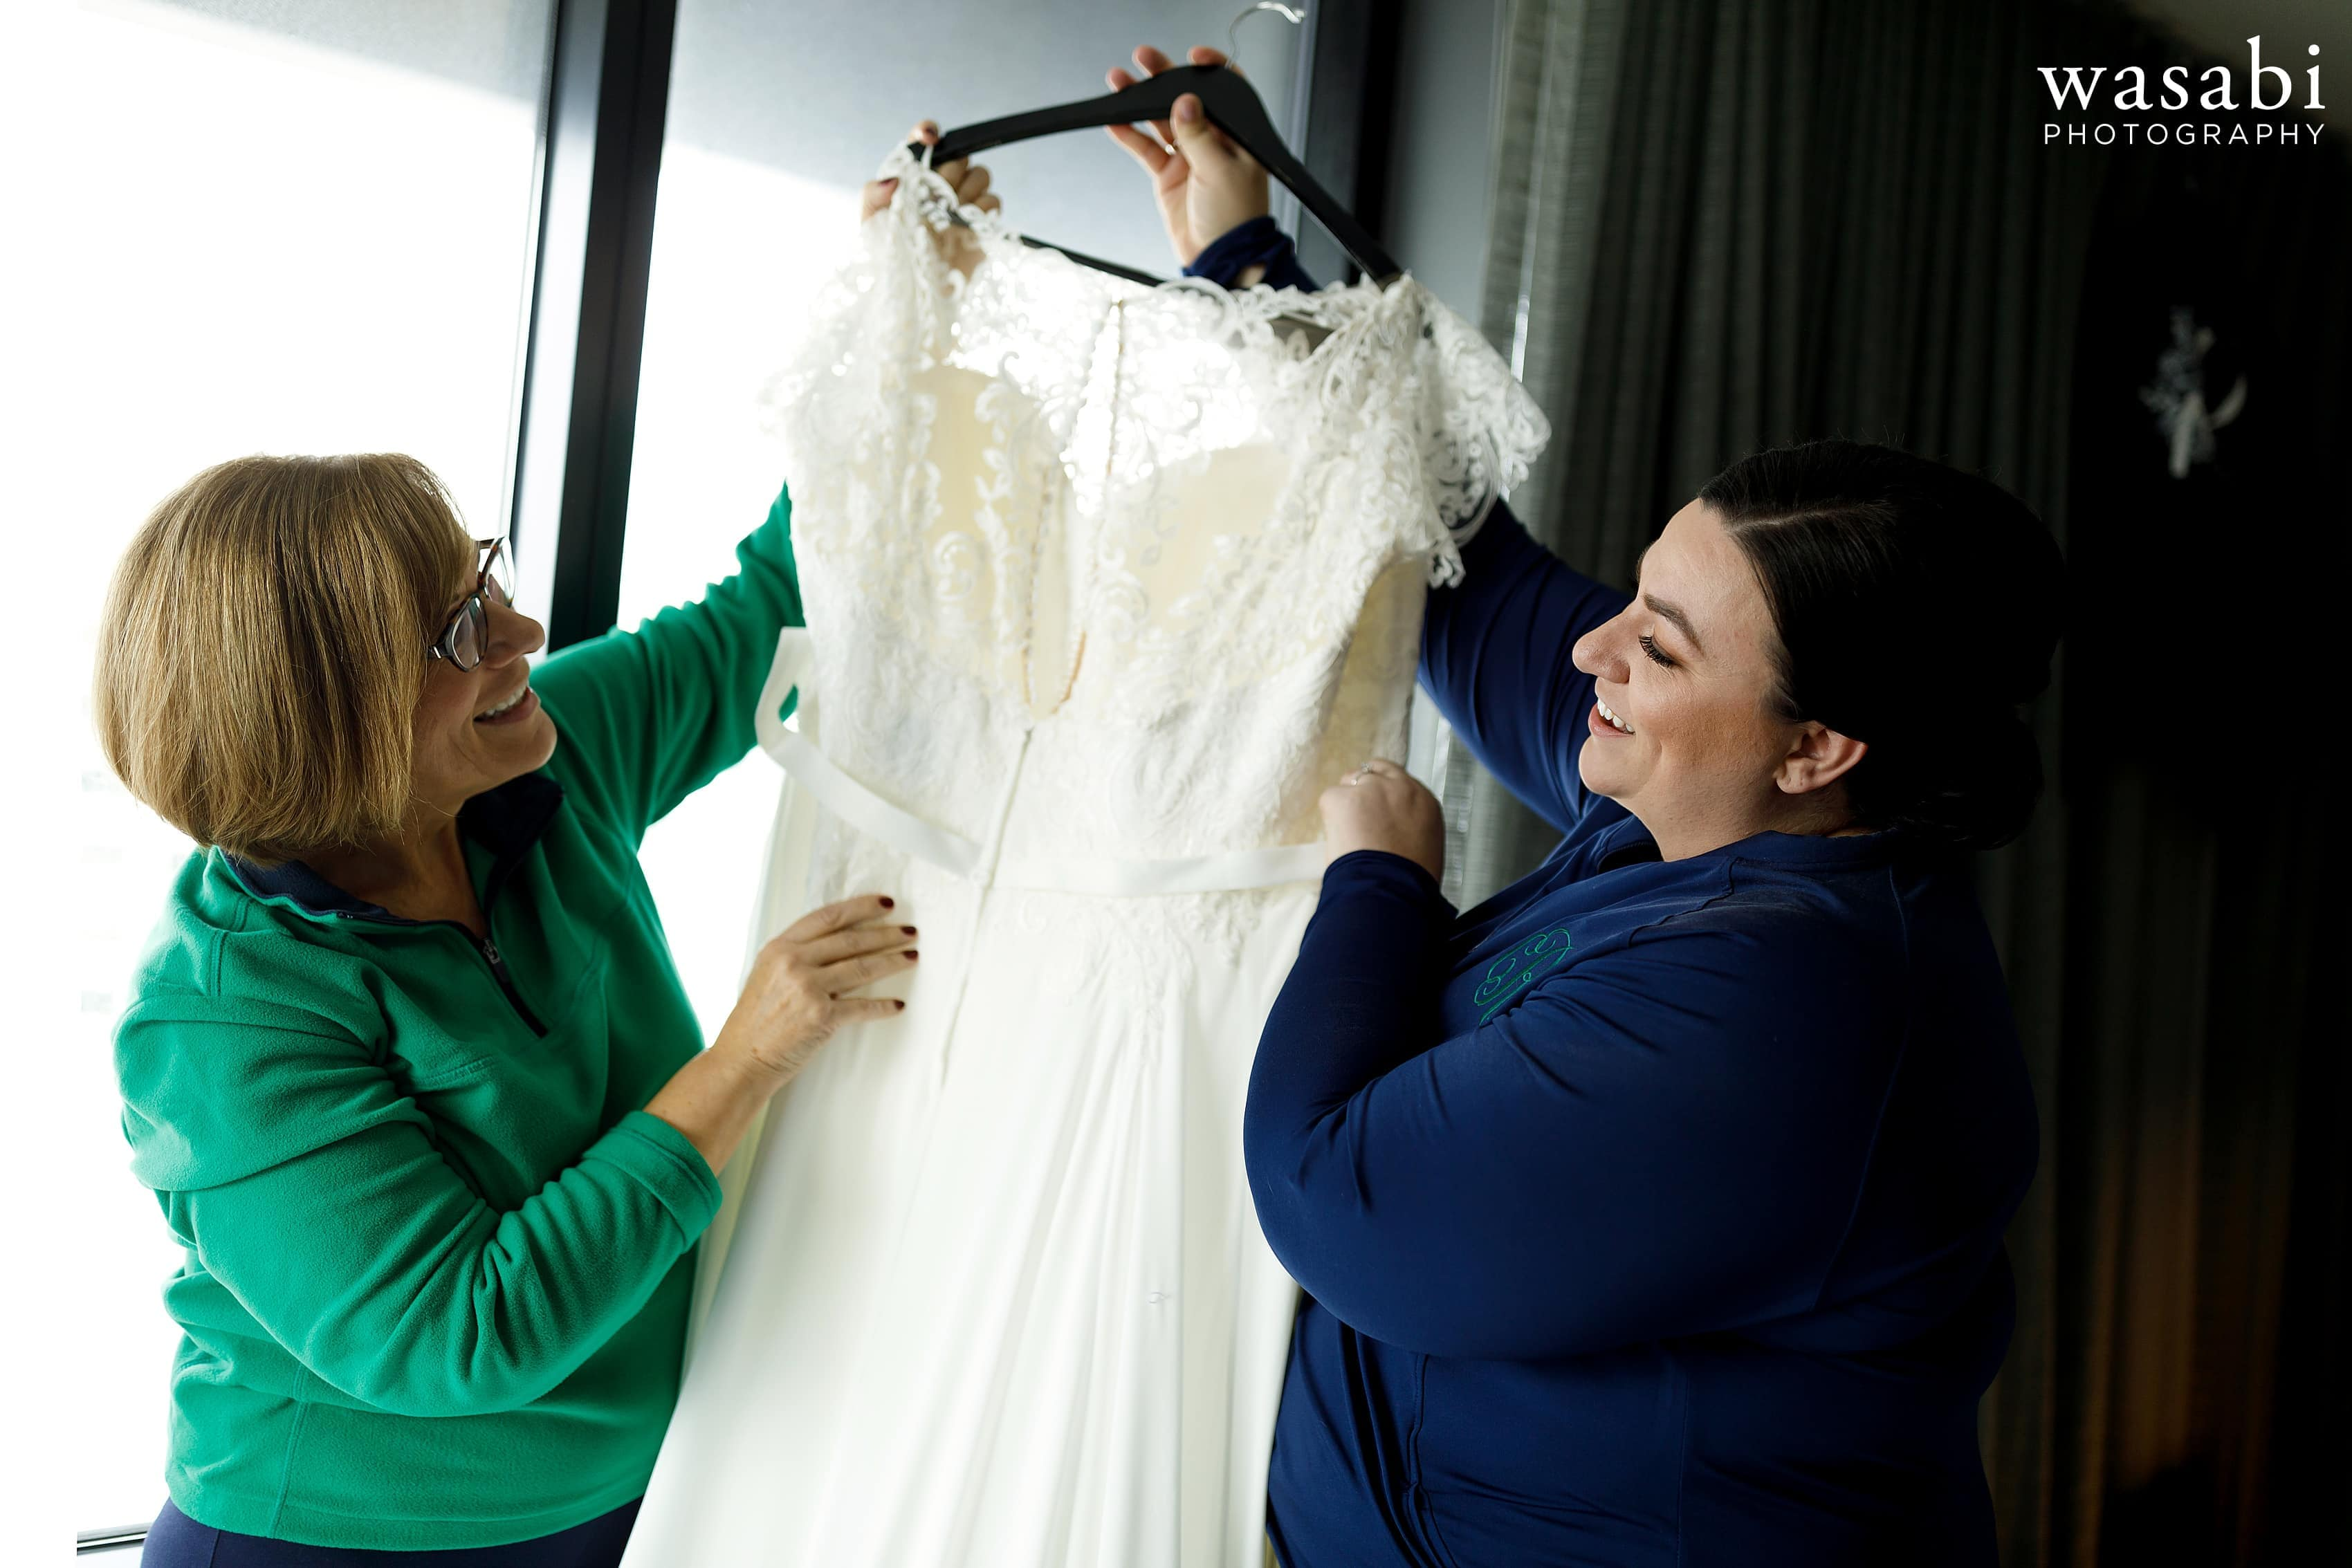 bride and mother look at wedding dress before putting on the dress for wedding